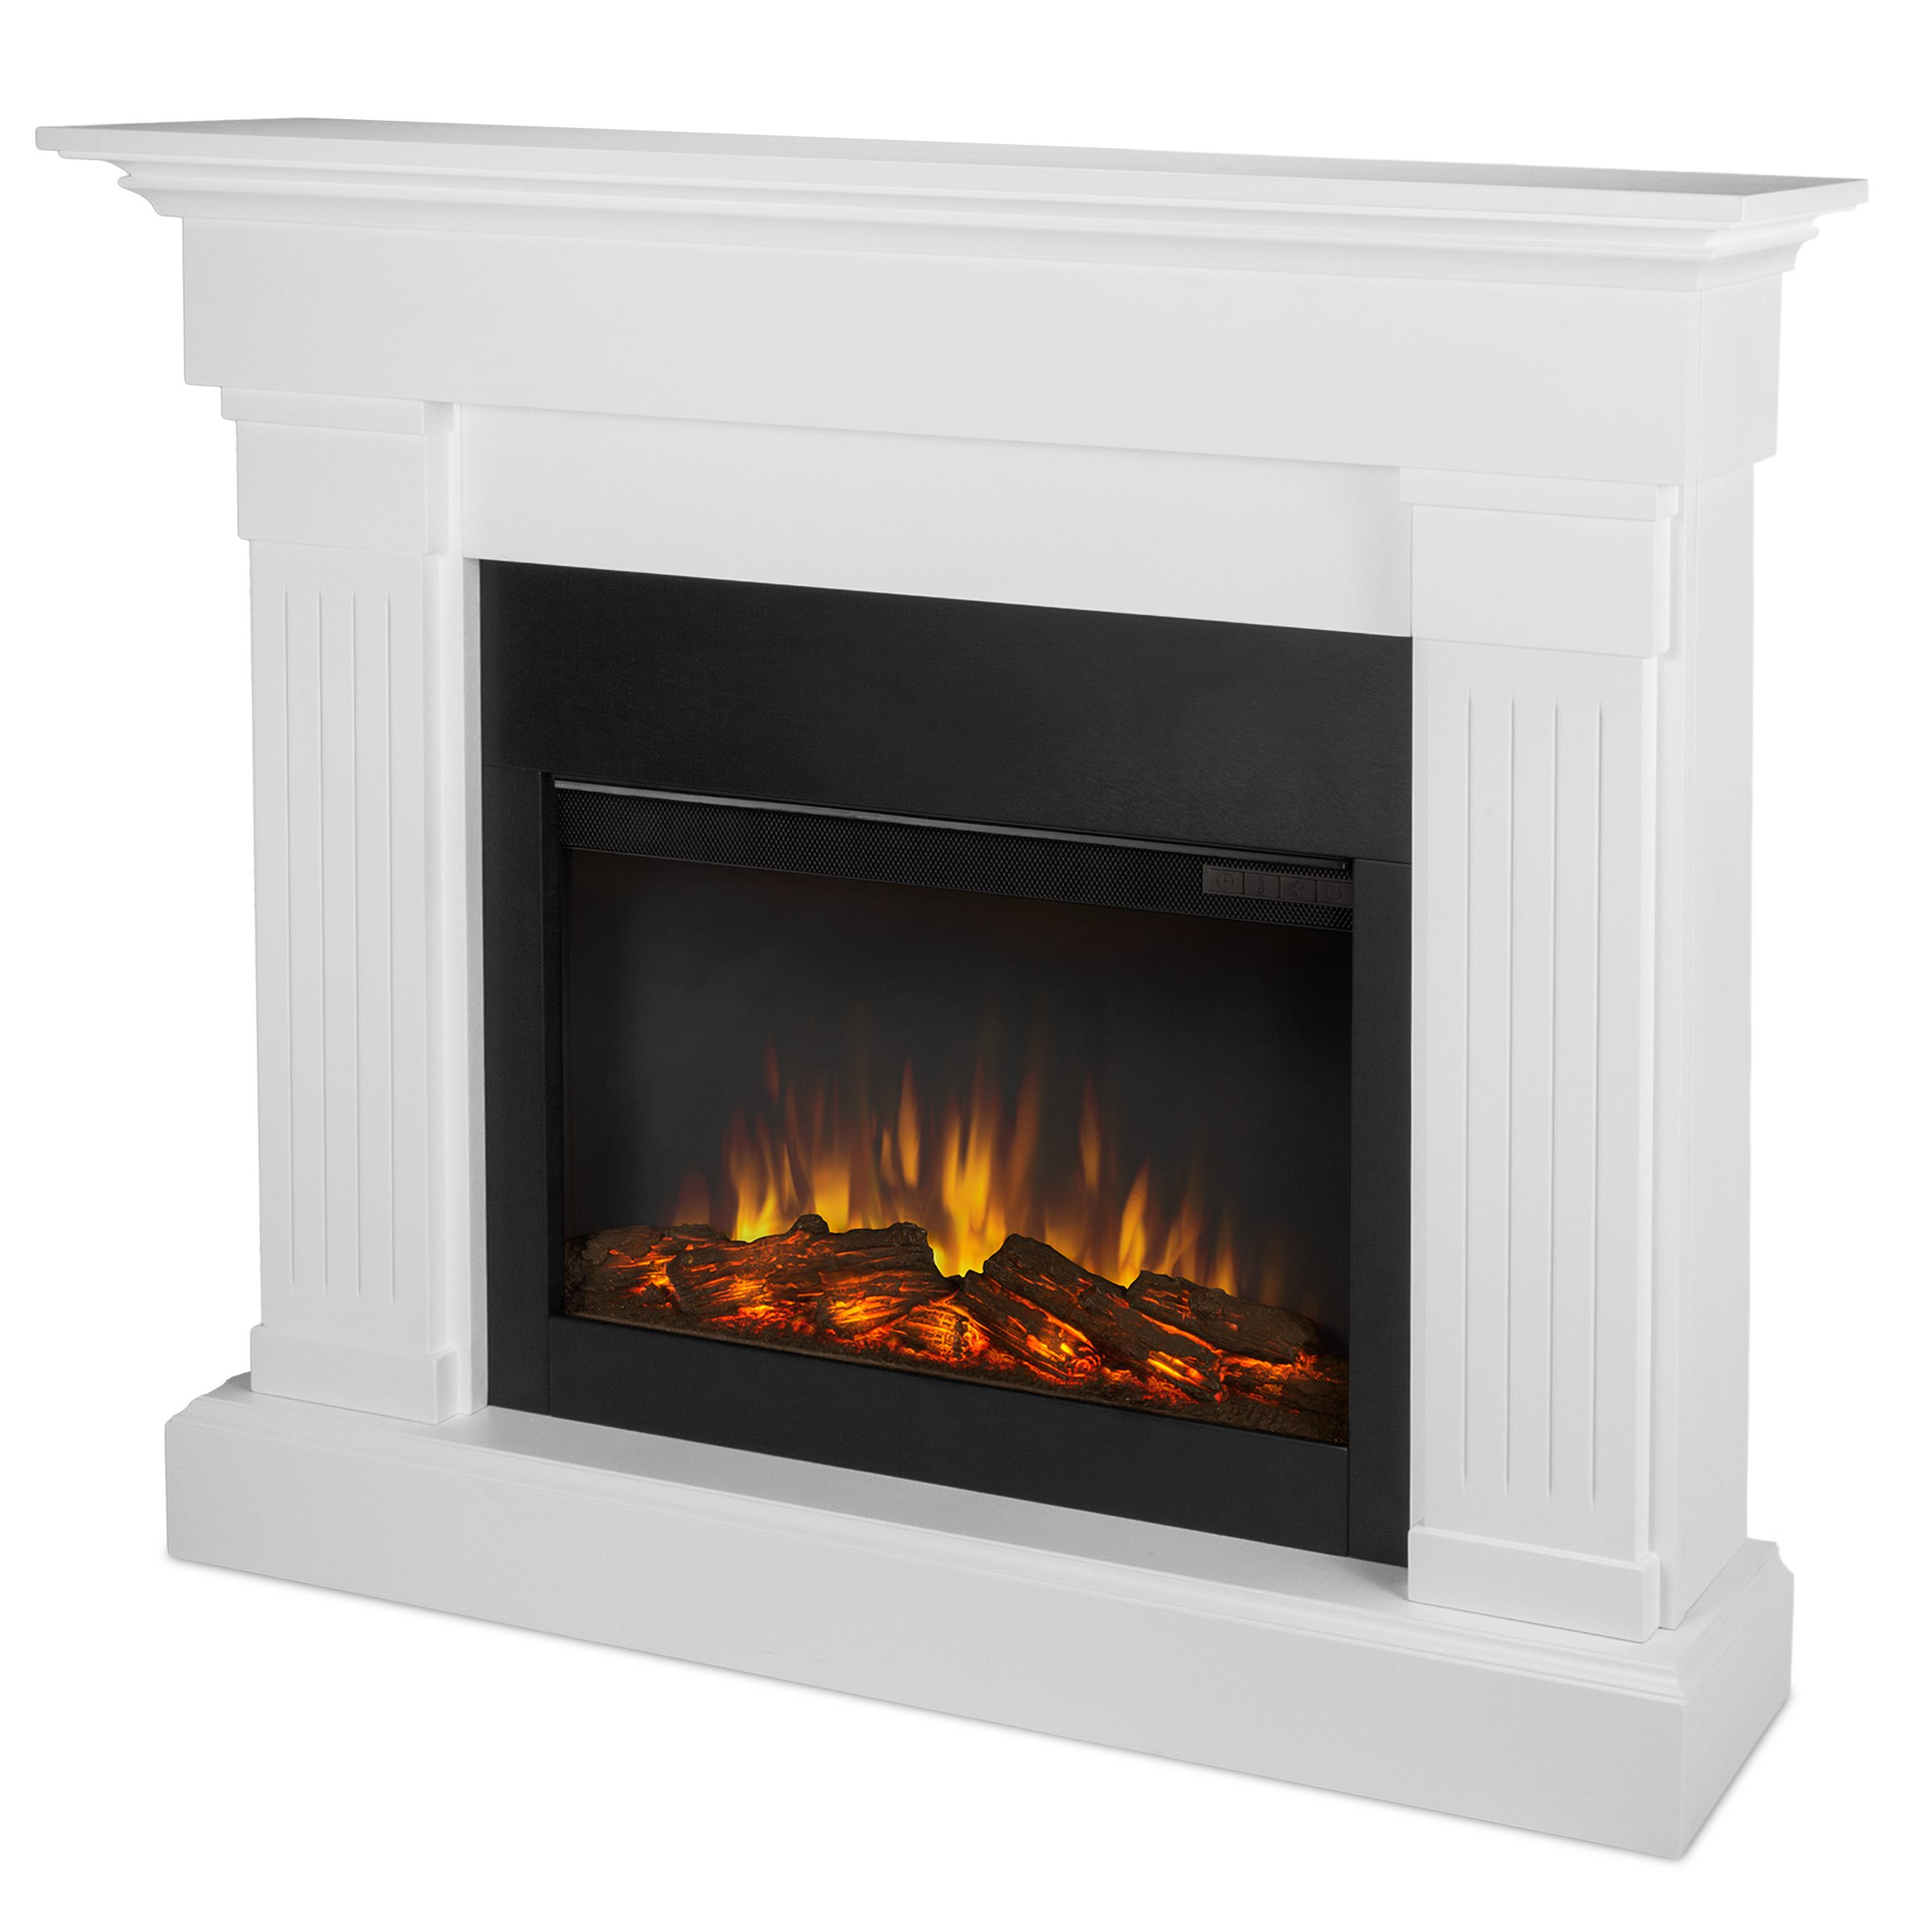 realistic design best electric fireplace heater of perfect insert images space walmart stove beautiful portable flame amazing corners amazon for